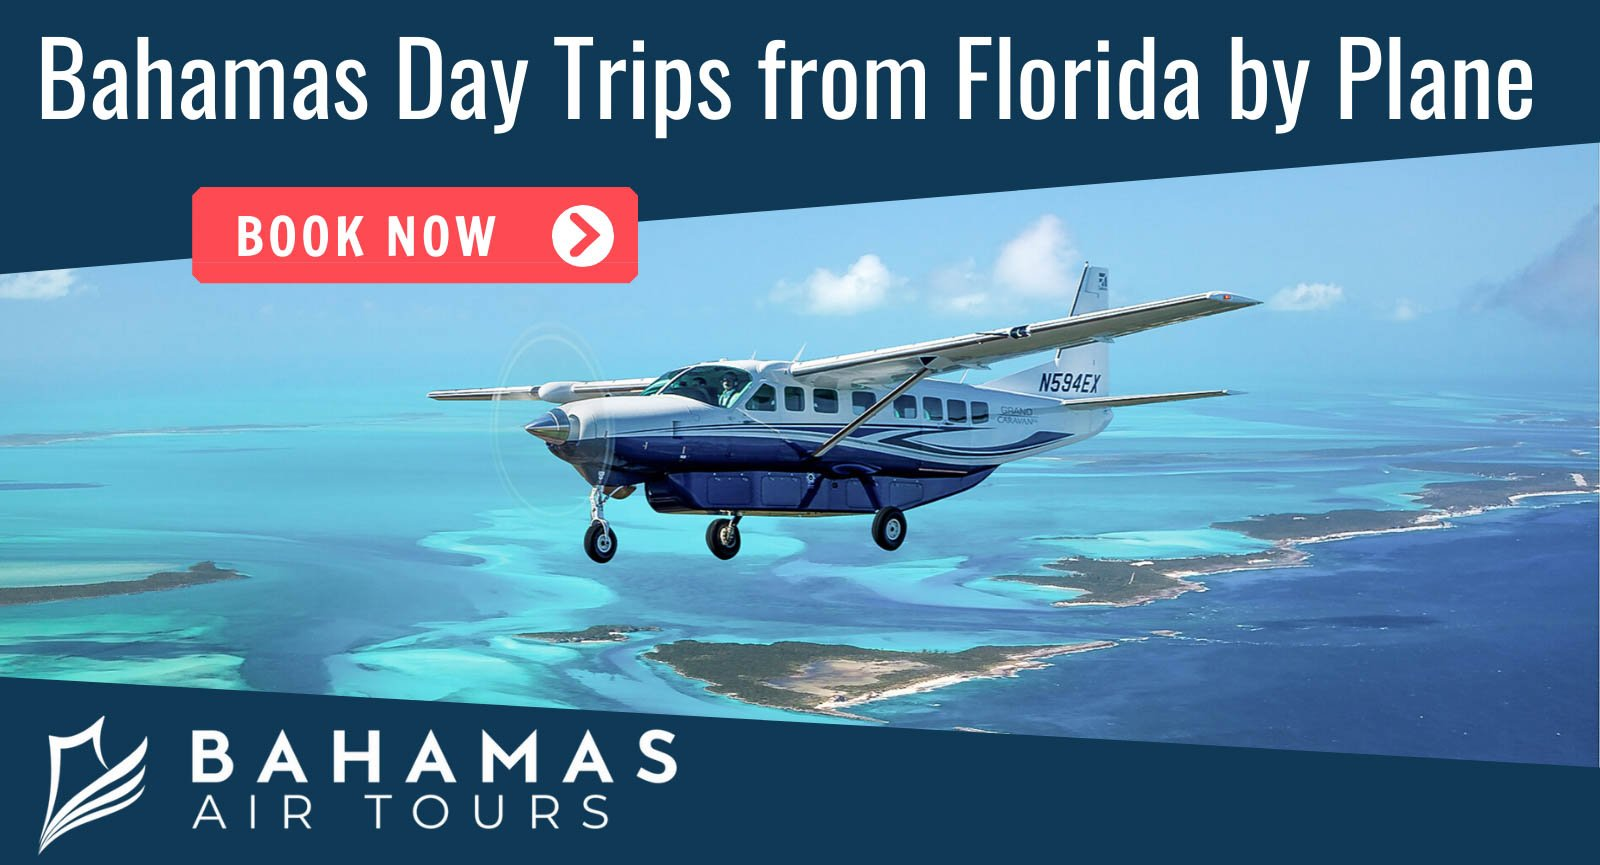 Bahamas Day Trips by Plane with Bahamas Air Tours. Fly from FLorida and Nassau to Swimming Pigs at Staniel Cay Exuma